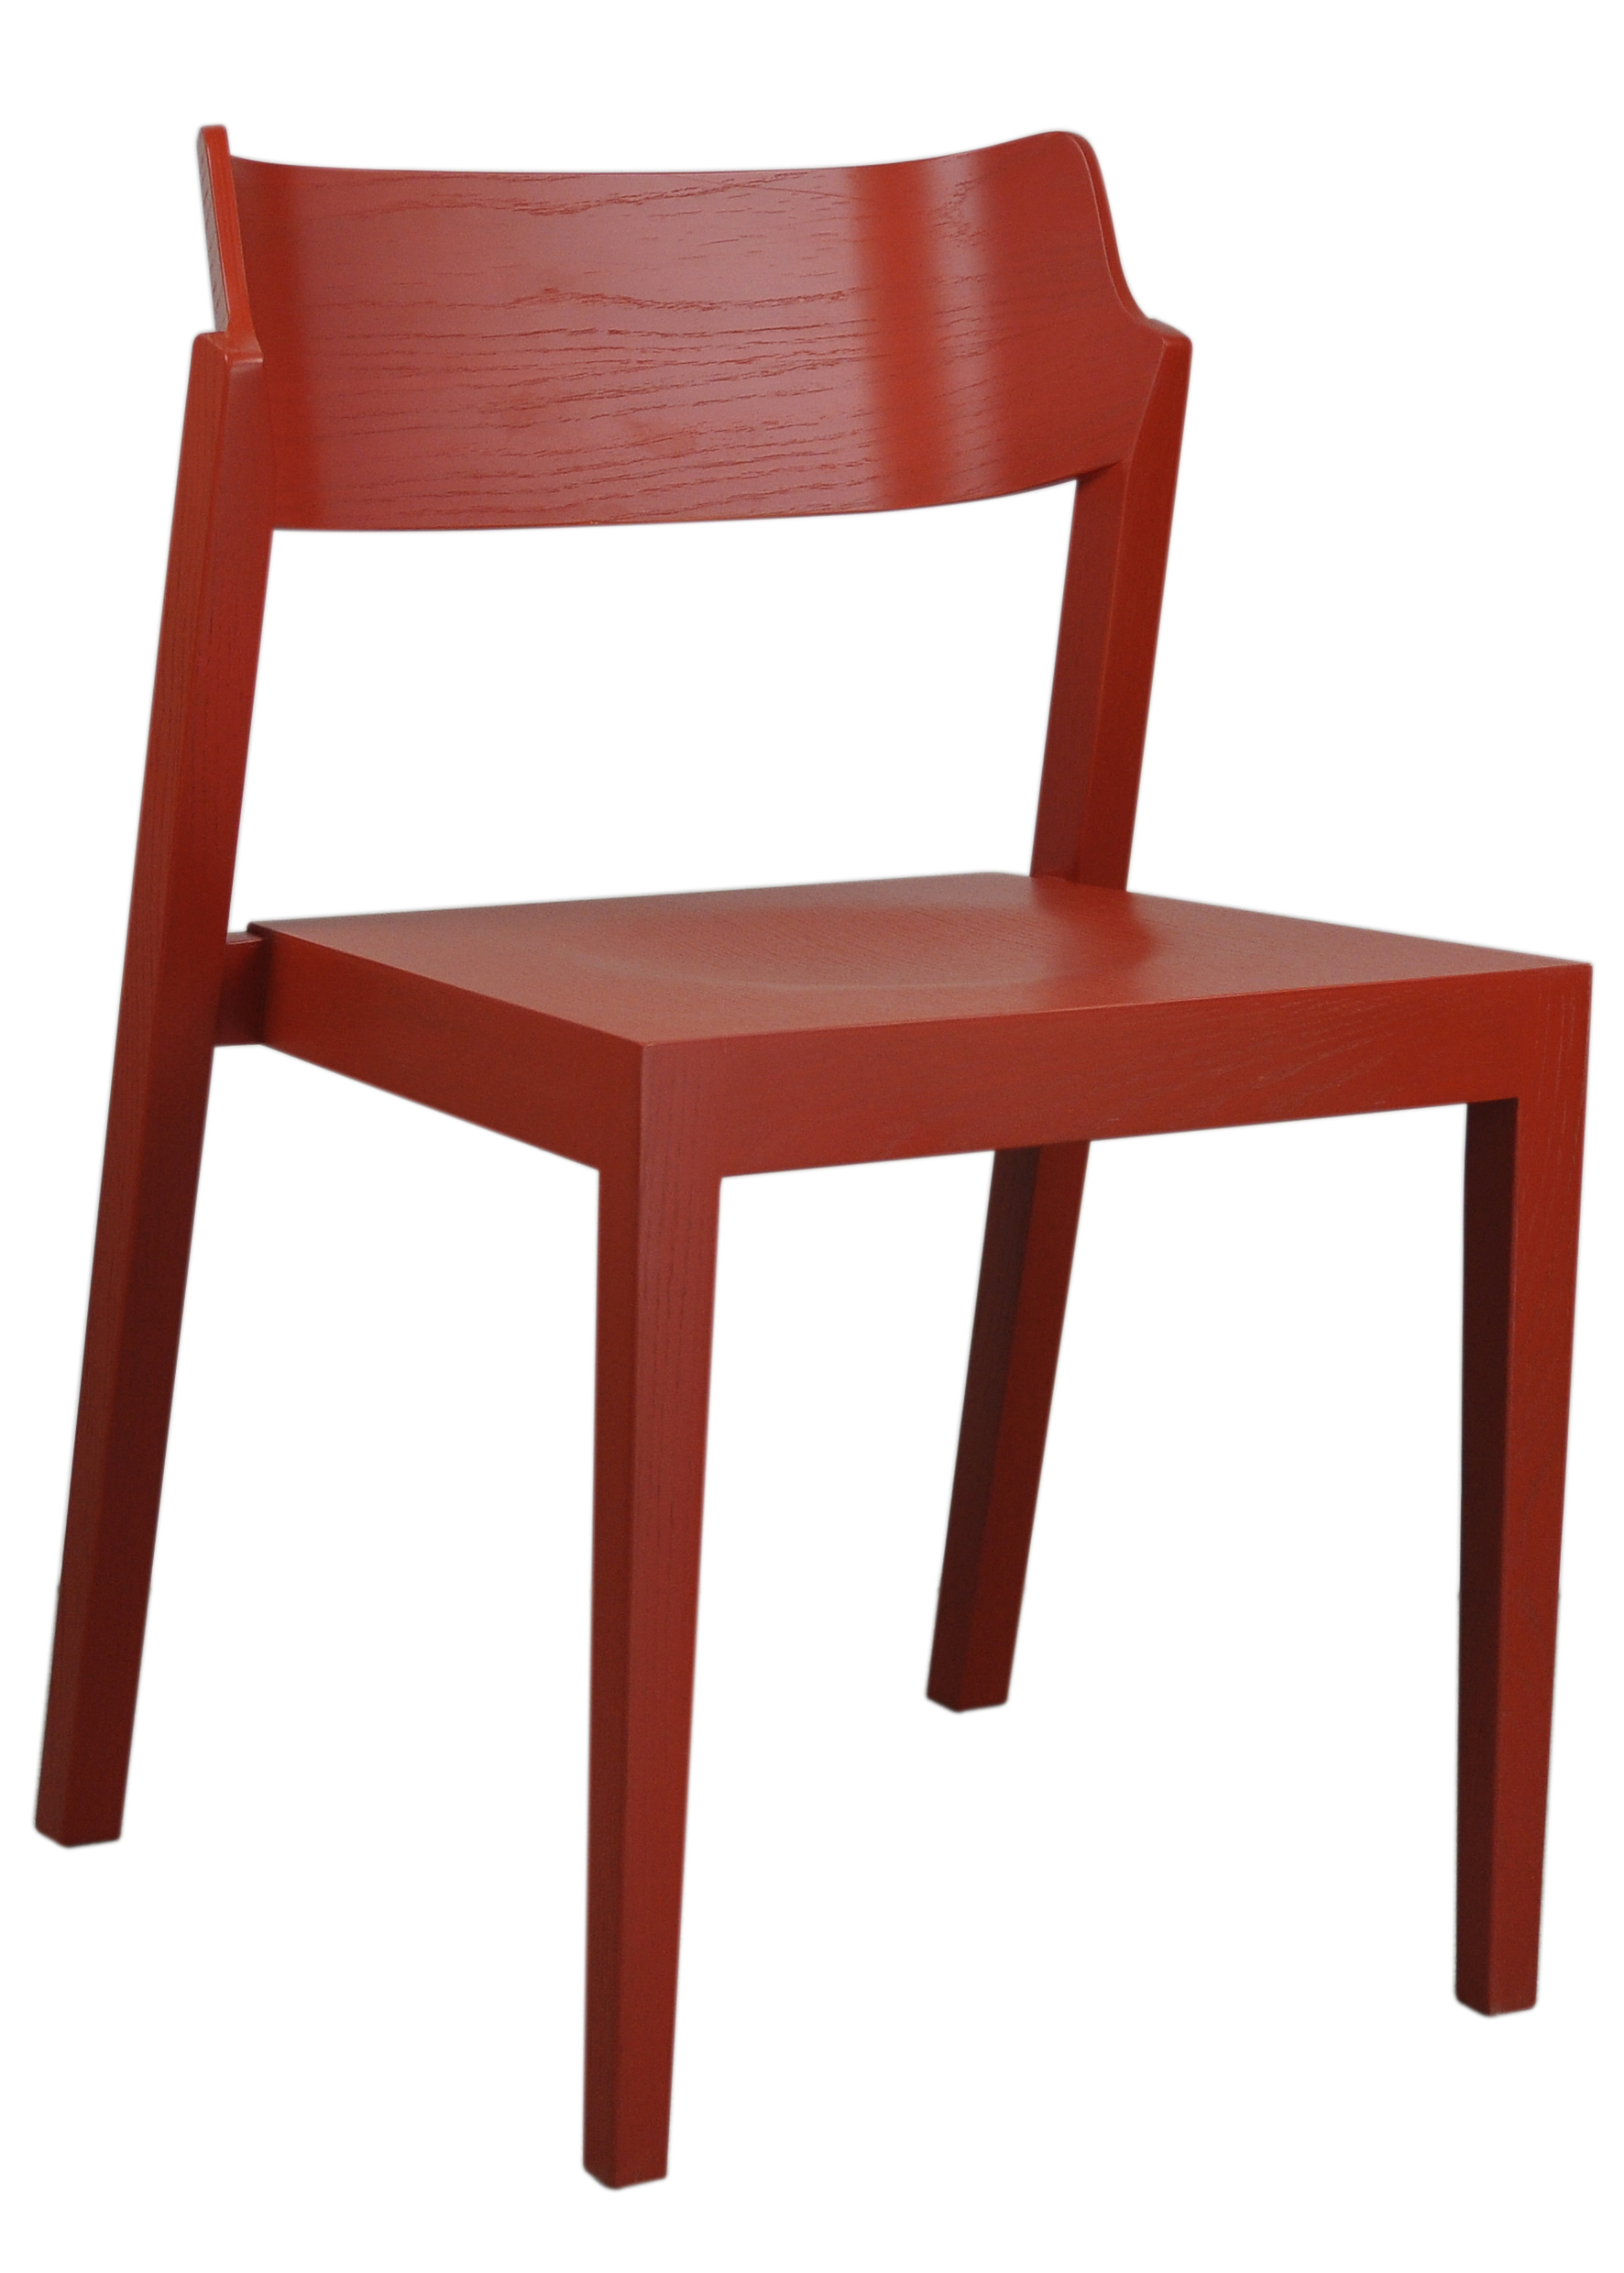 The 100 Chair in red